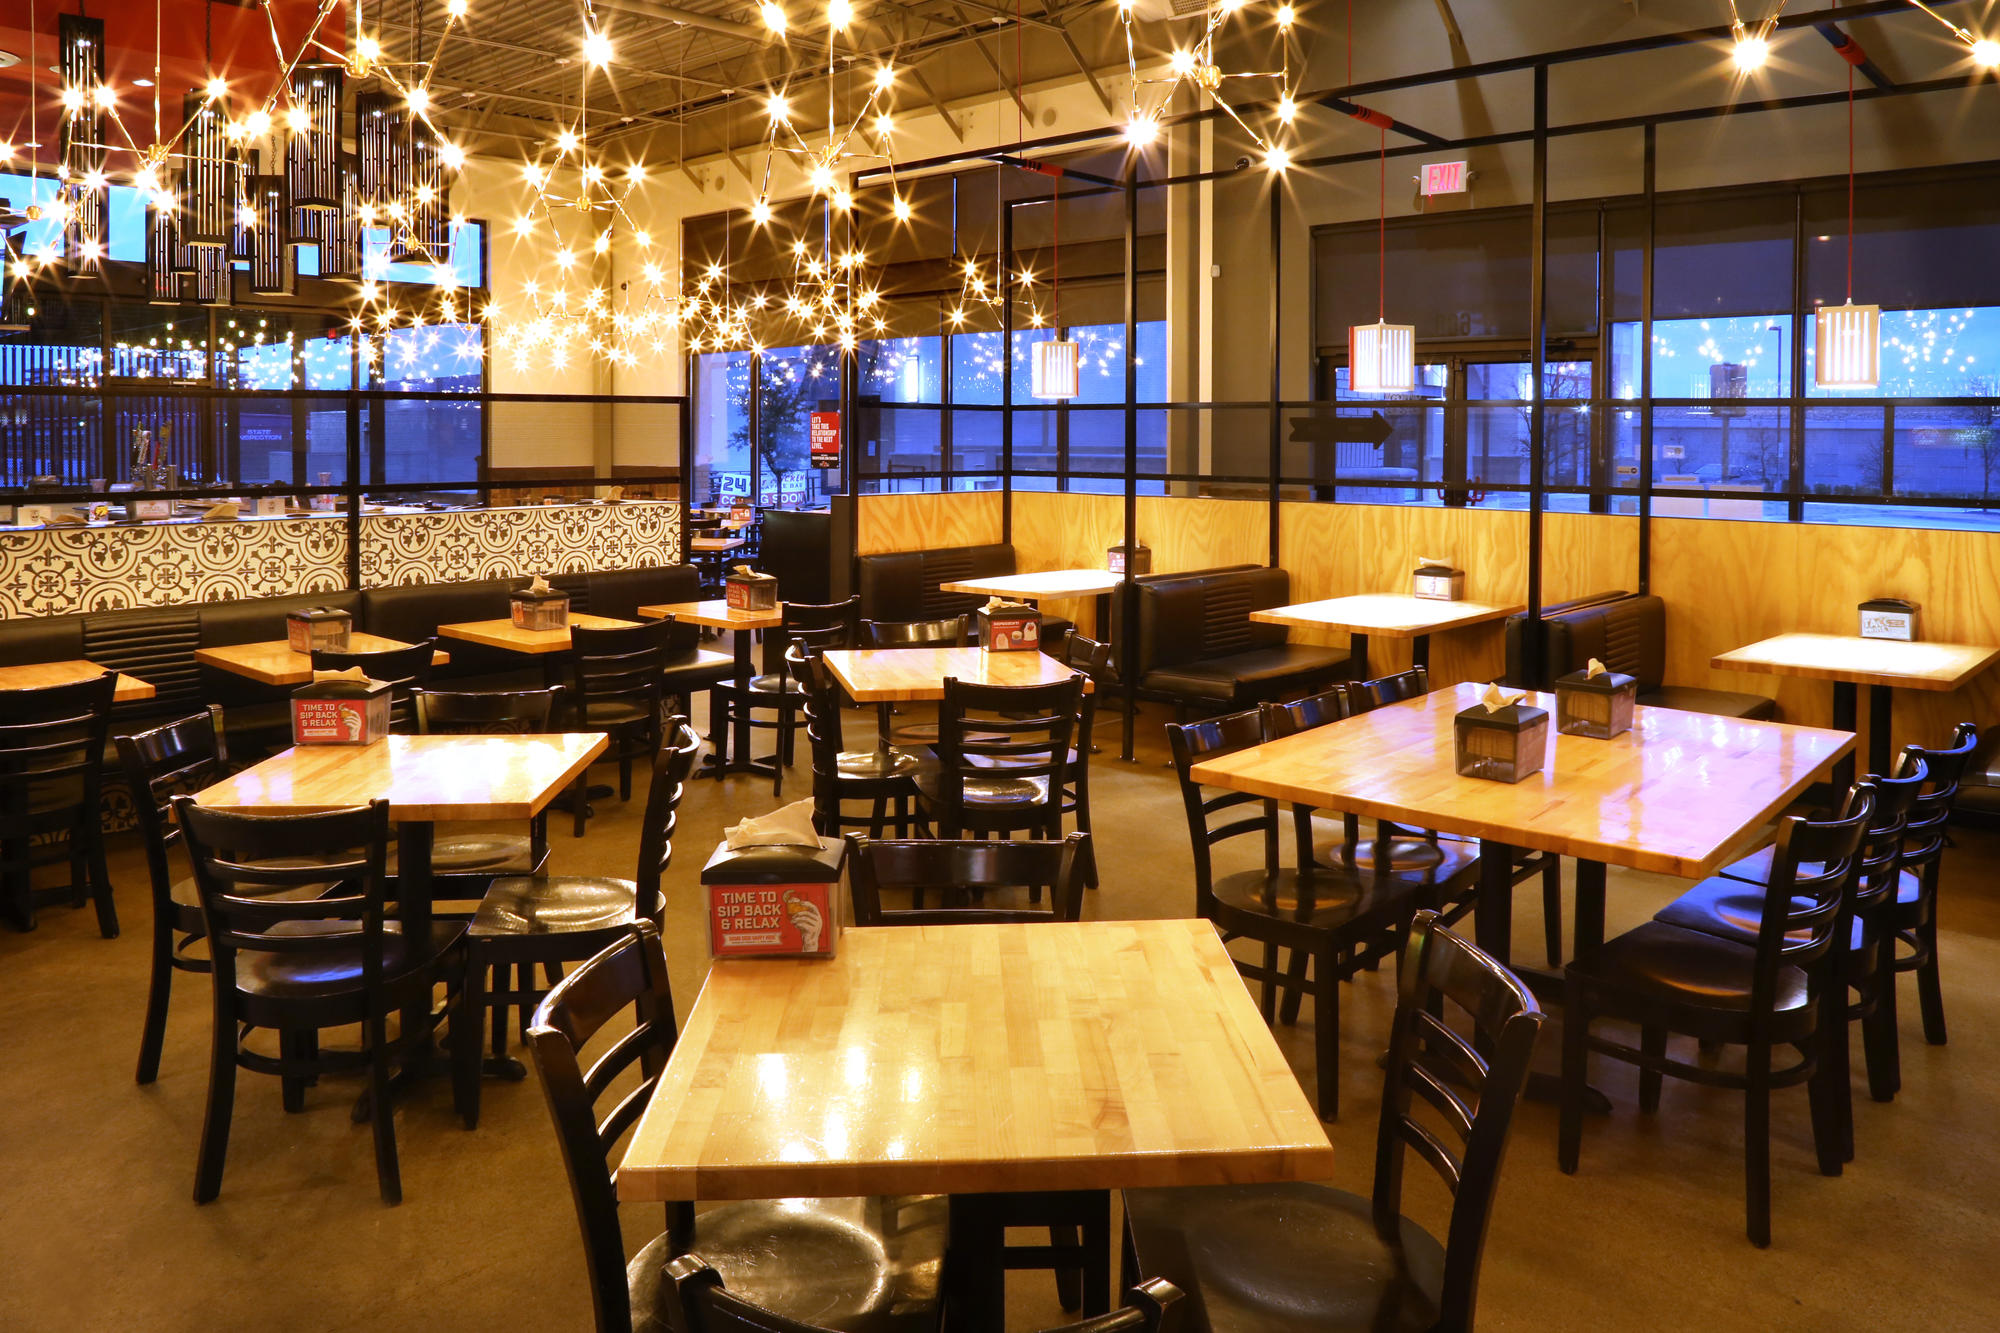 Torchy's Tacos image 5